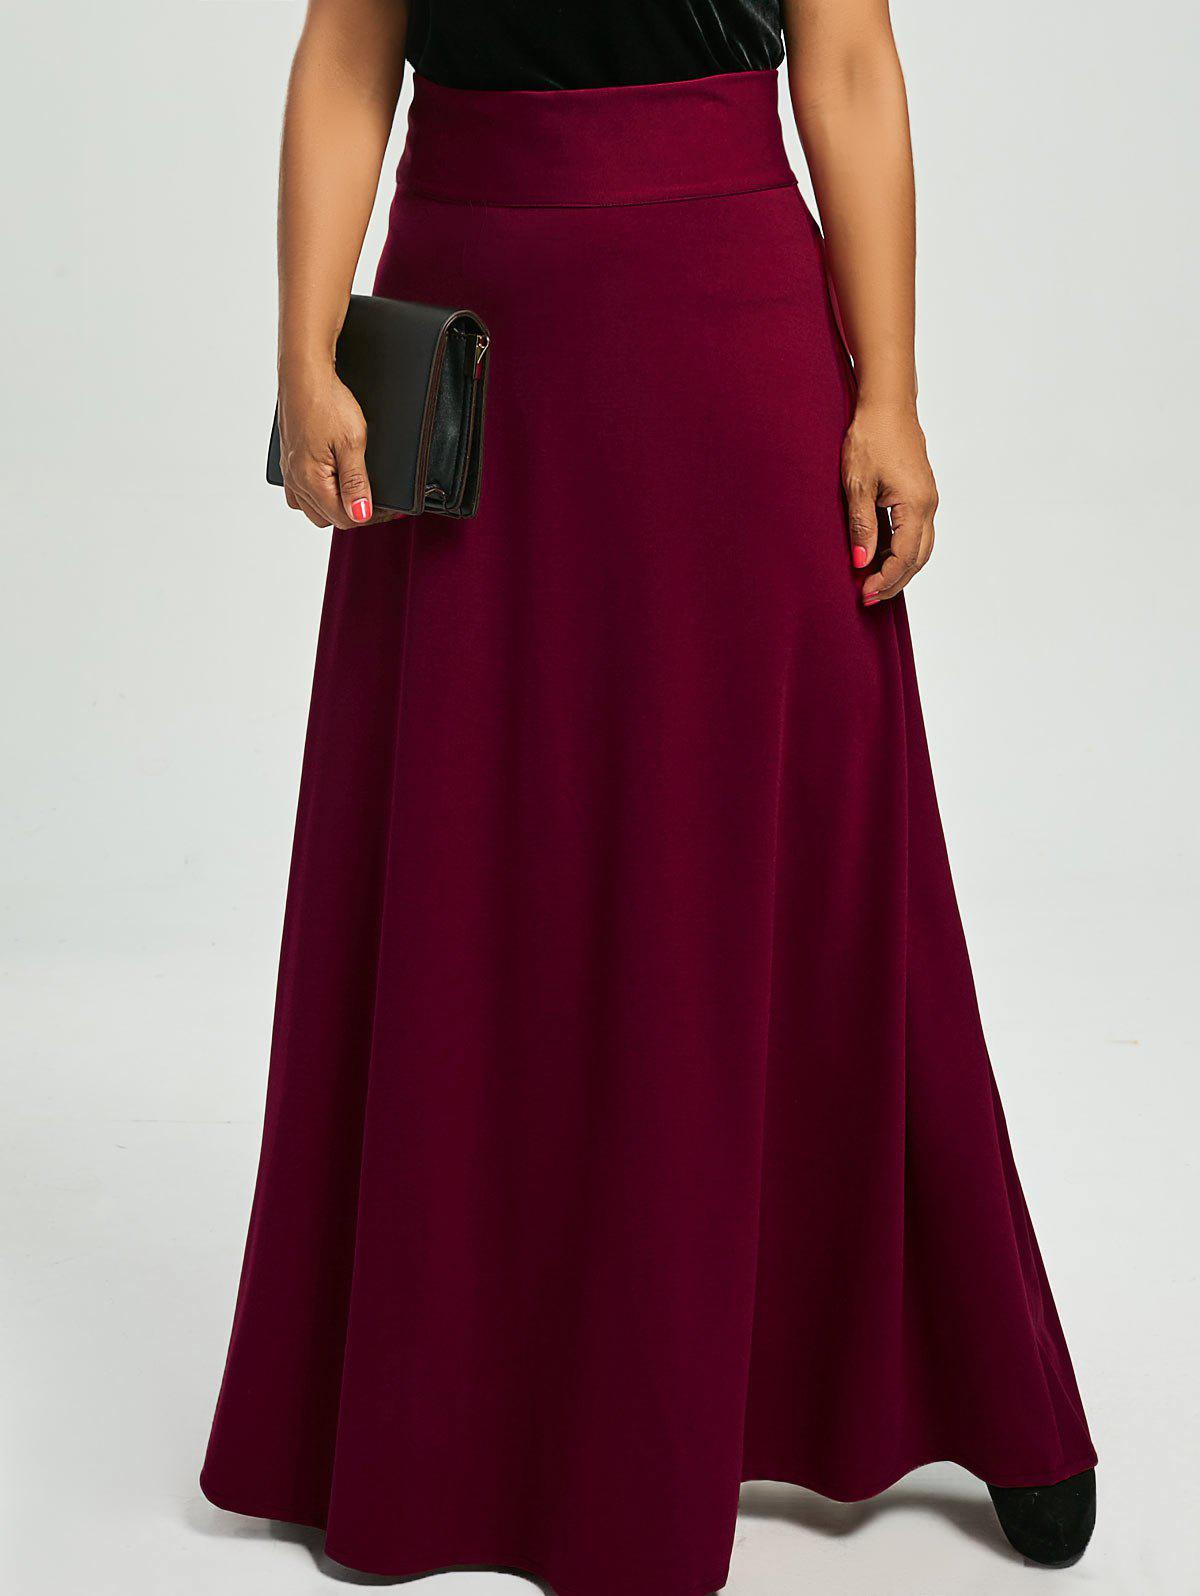 Green emerald cocktail dress with wide belt, Design Interior ideas for bedroom